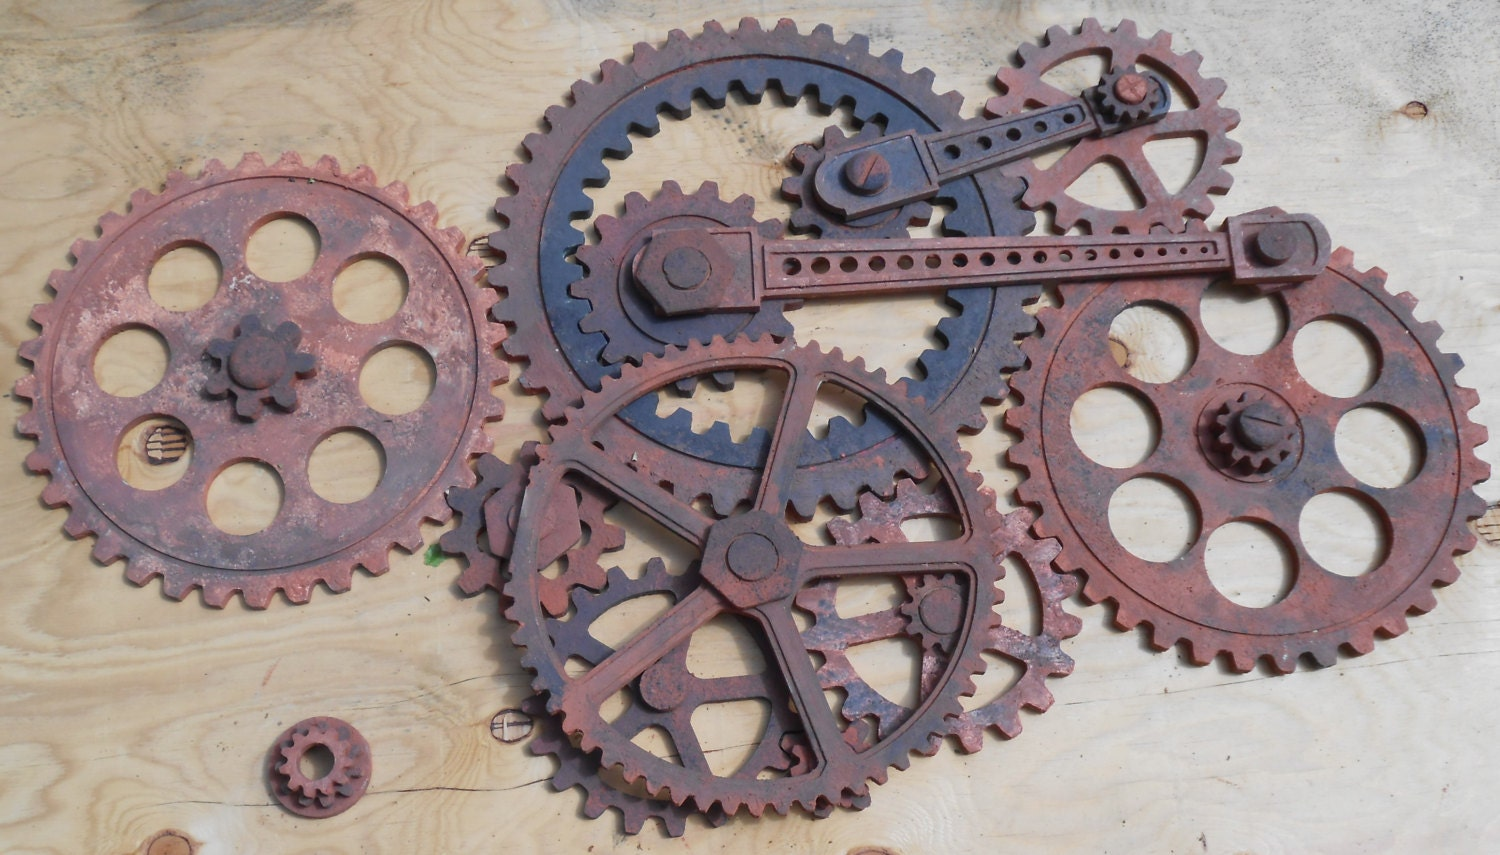 Gear Wall Decor Gear Wall Decoration Feet By Wooden Gears On Buy Wall Art Gear And Get Free Shipping O